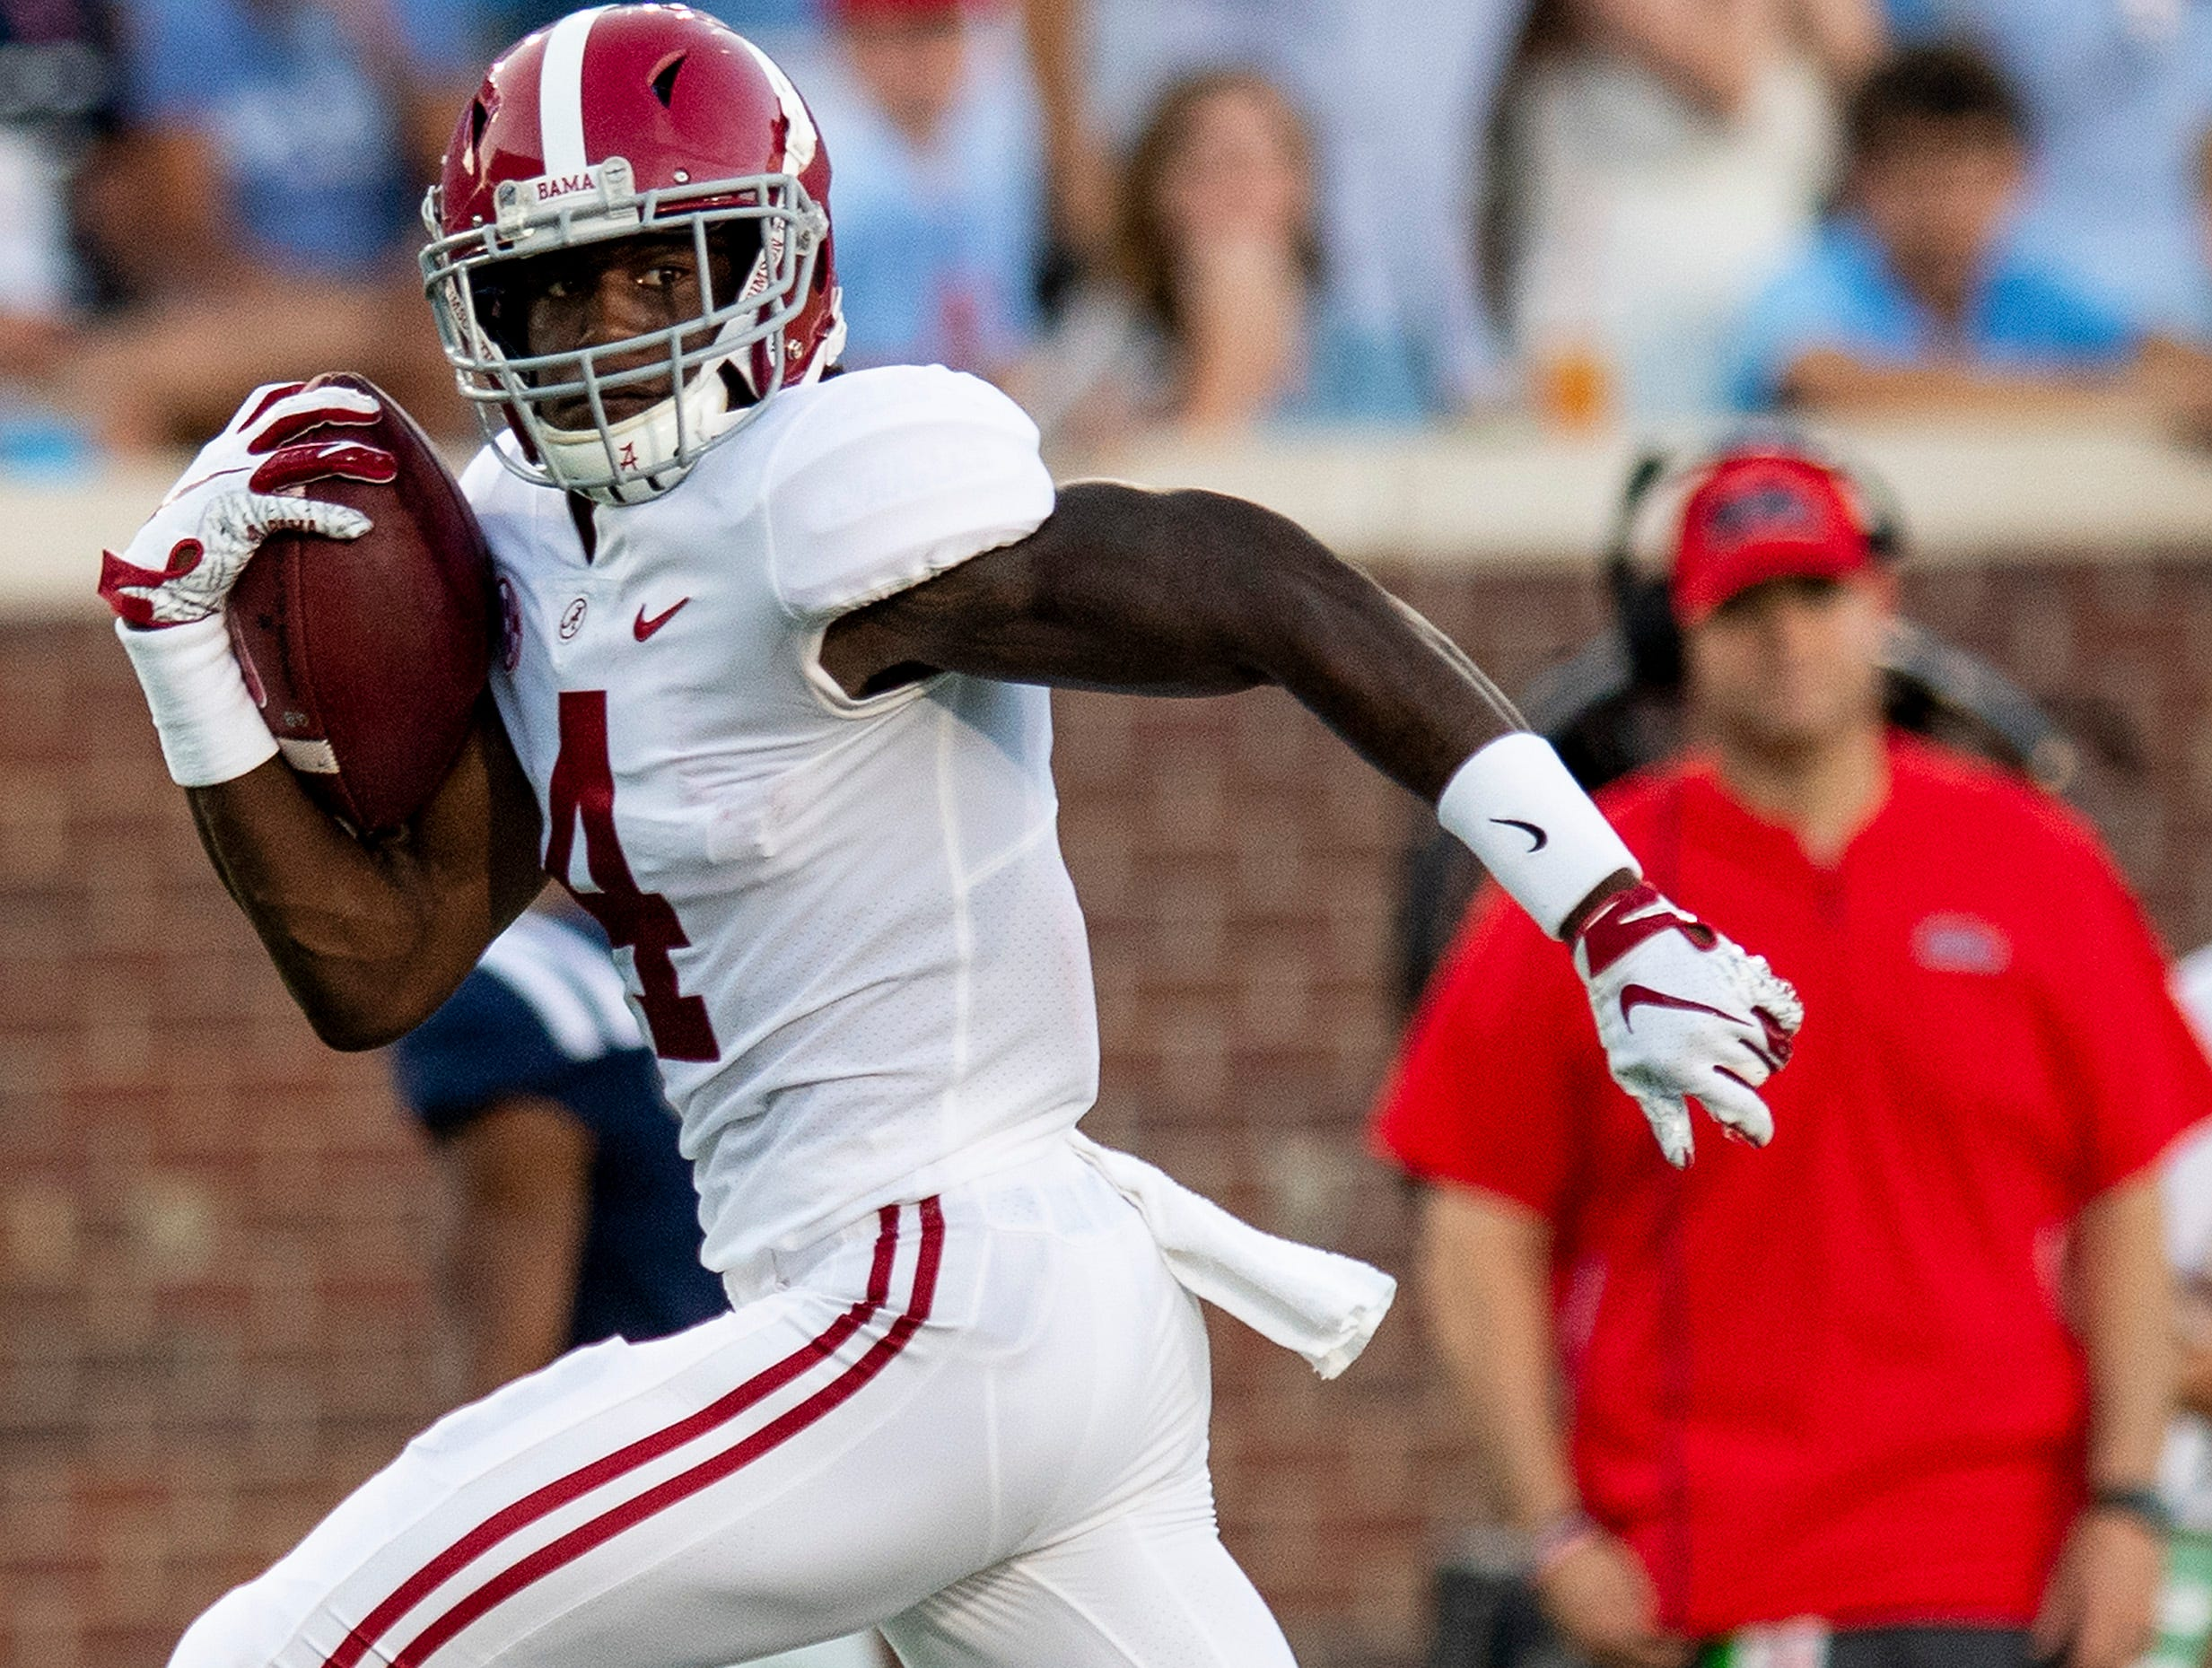 Alabama wide receiver Jerry Jeudy (4) scores a touchdown against Ole Miss In first half action in Oxford, Ms., on Saturday September 15, 2018.